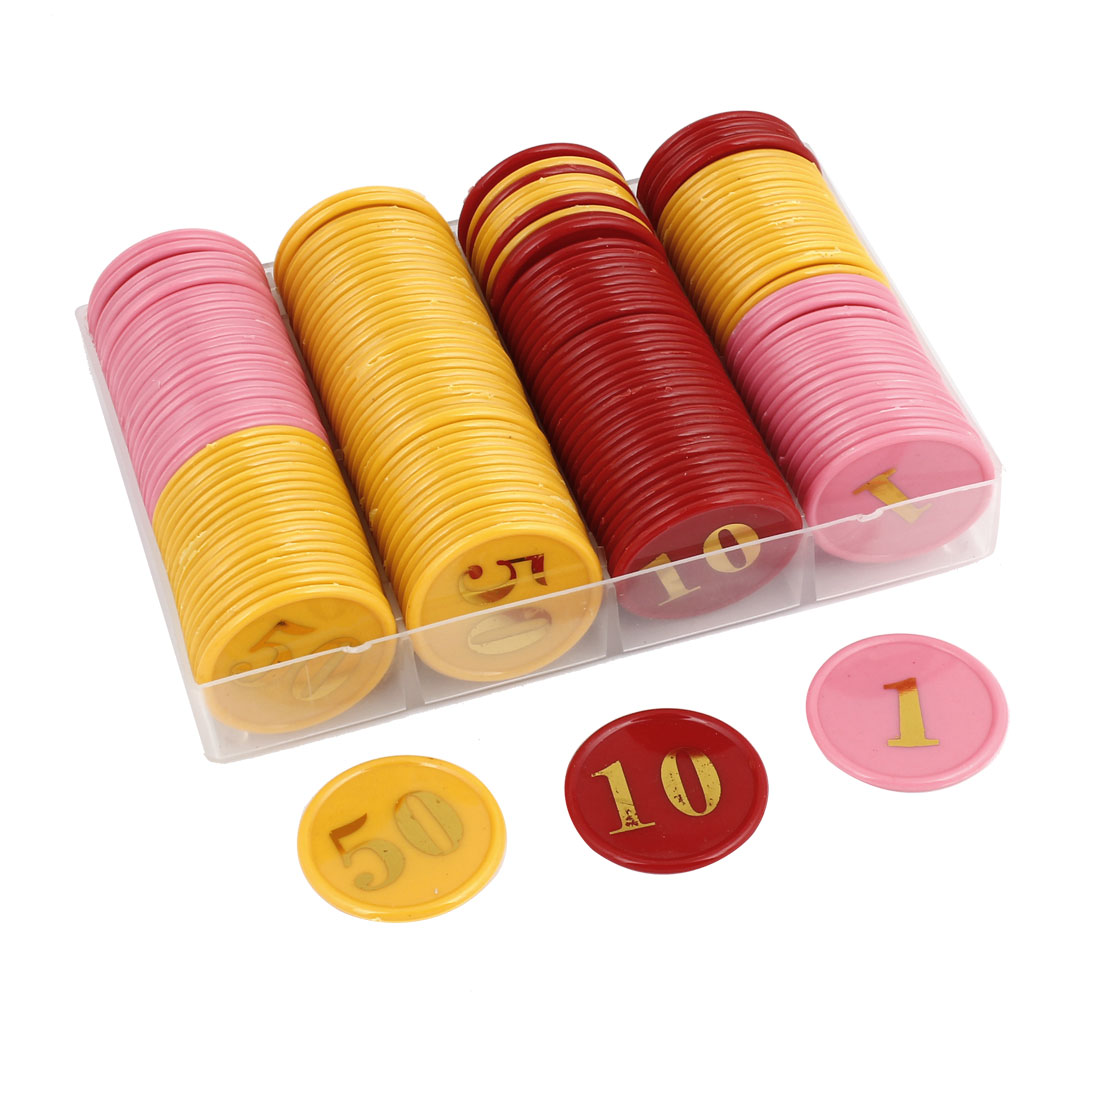 Red Pink Yellow Plastic Pocker Chips Game Tool Set 160 Pieces